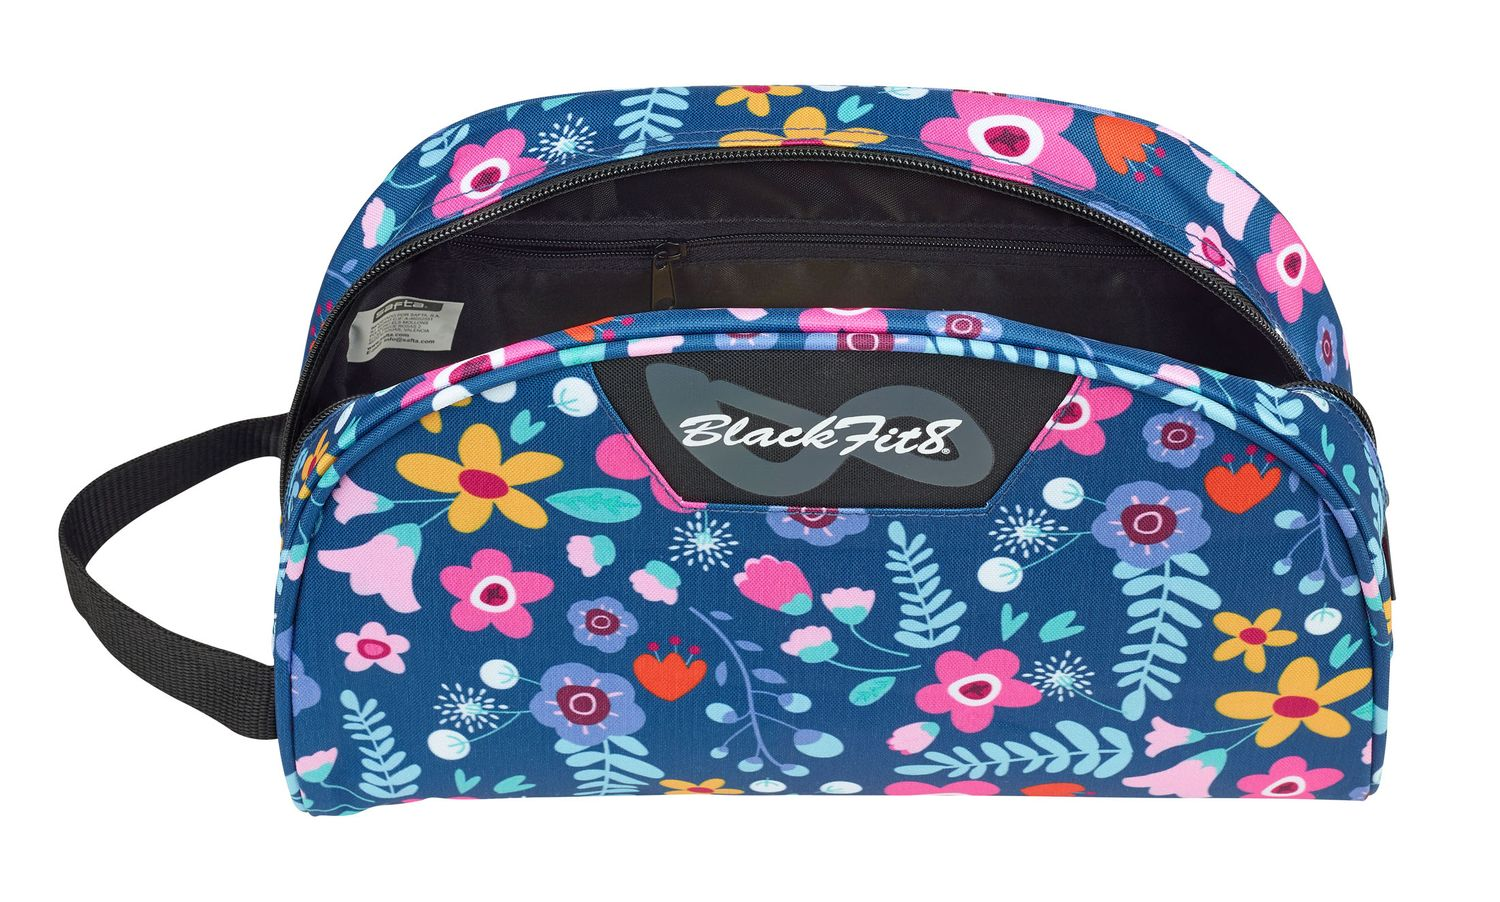 Blackfit Flowers Wash Travel Bag – image 2